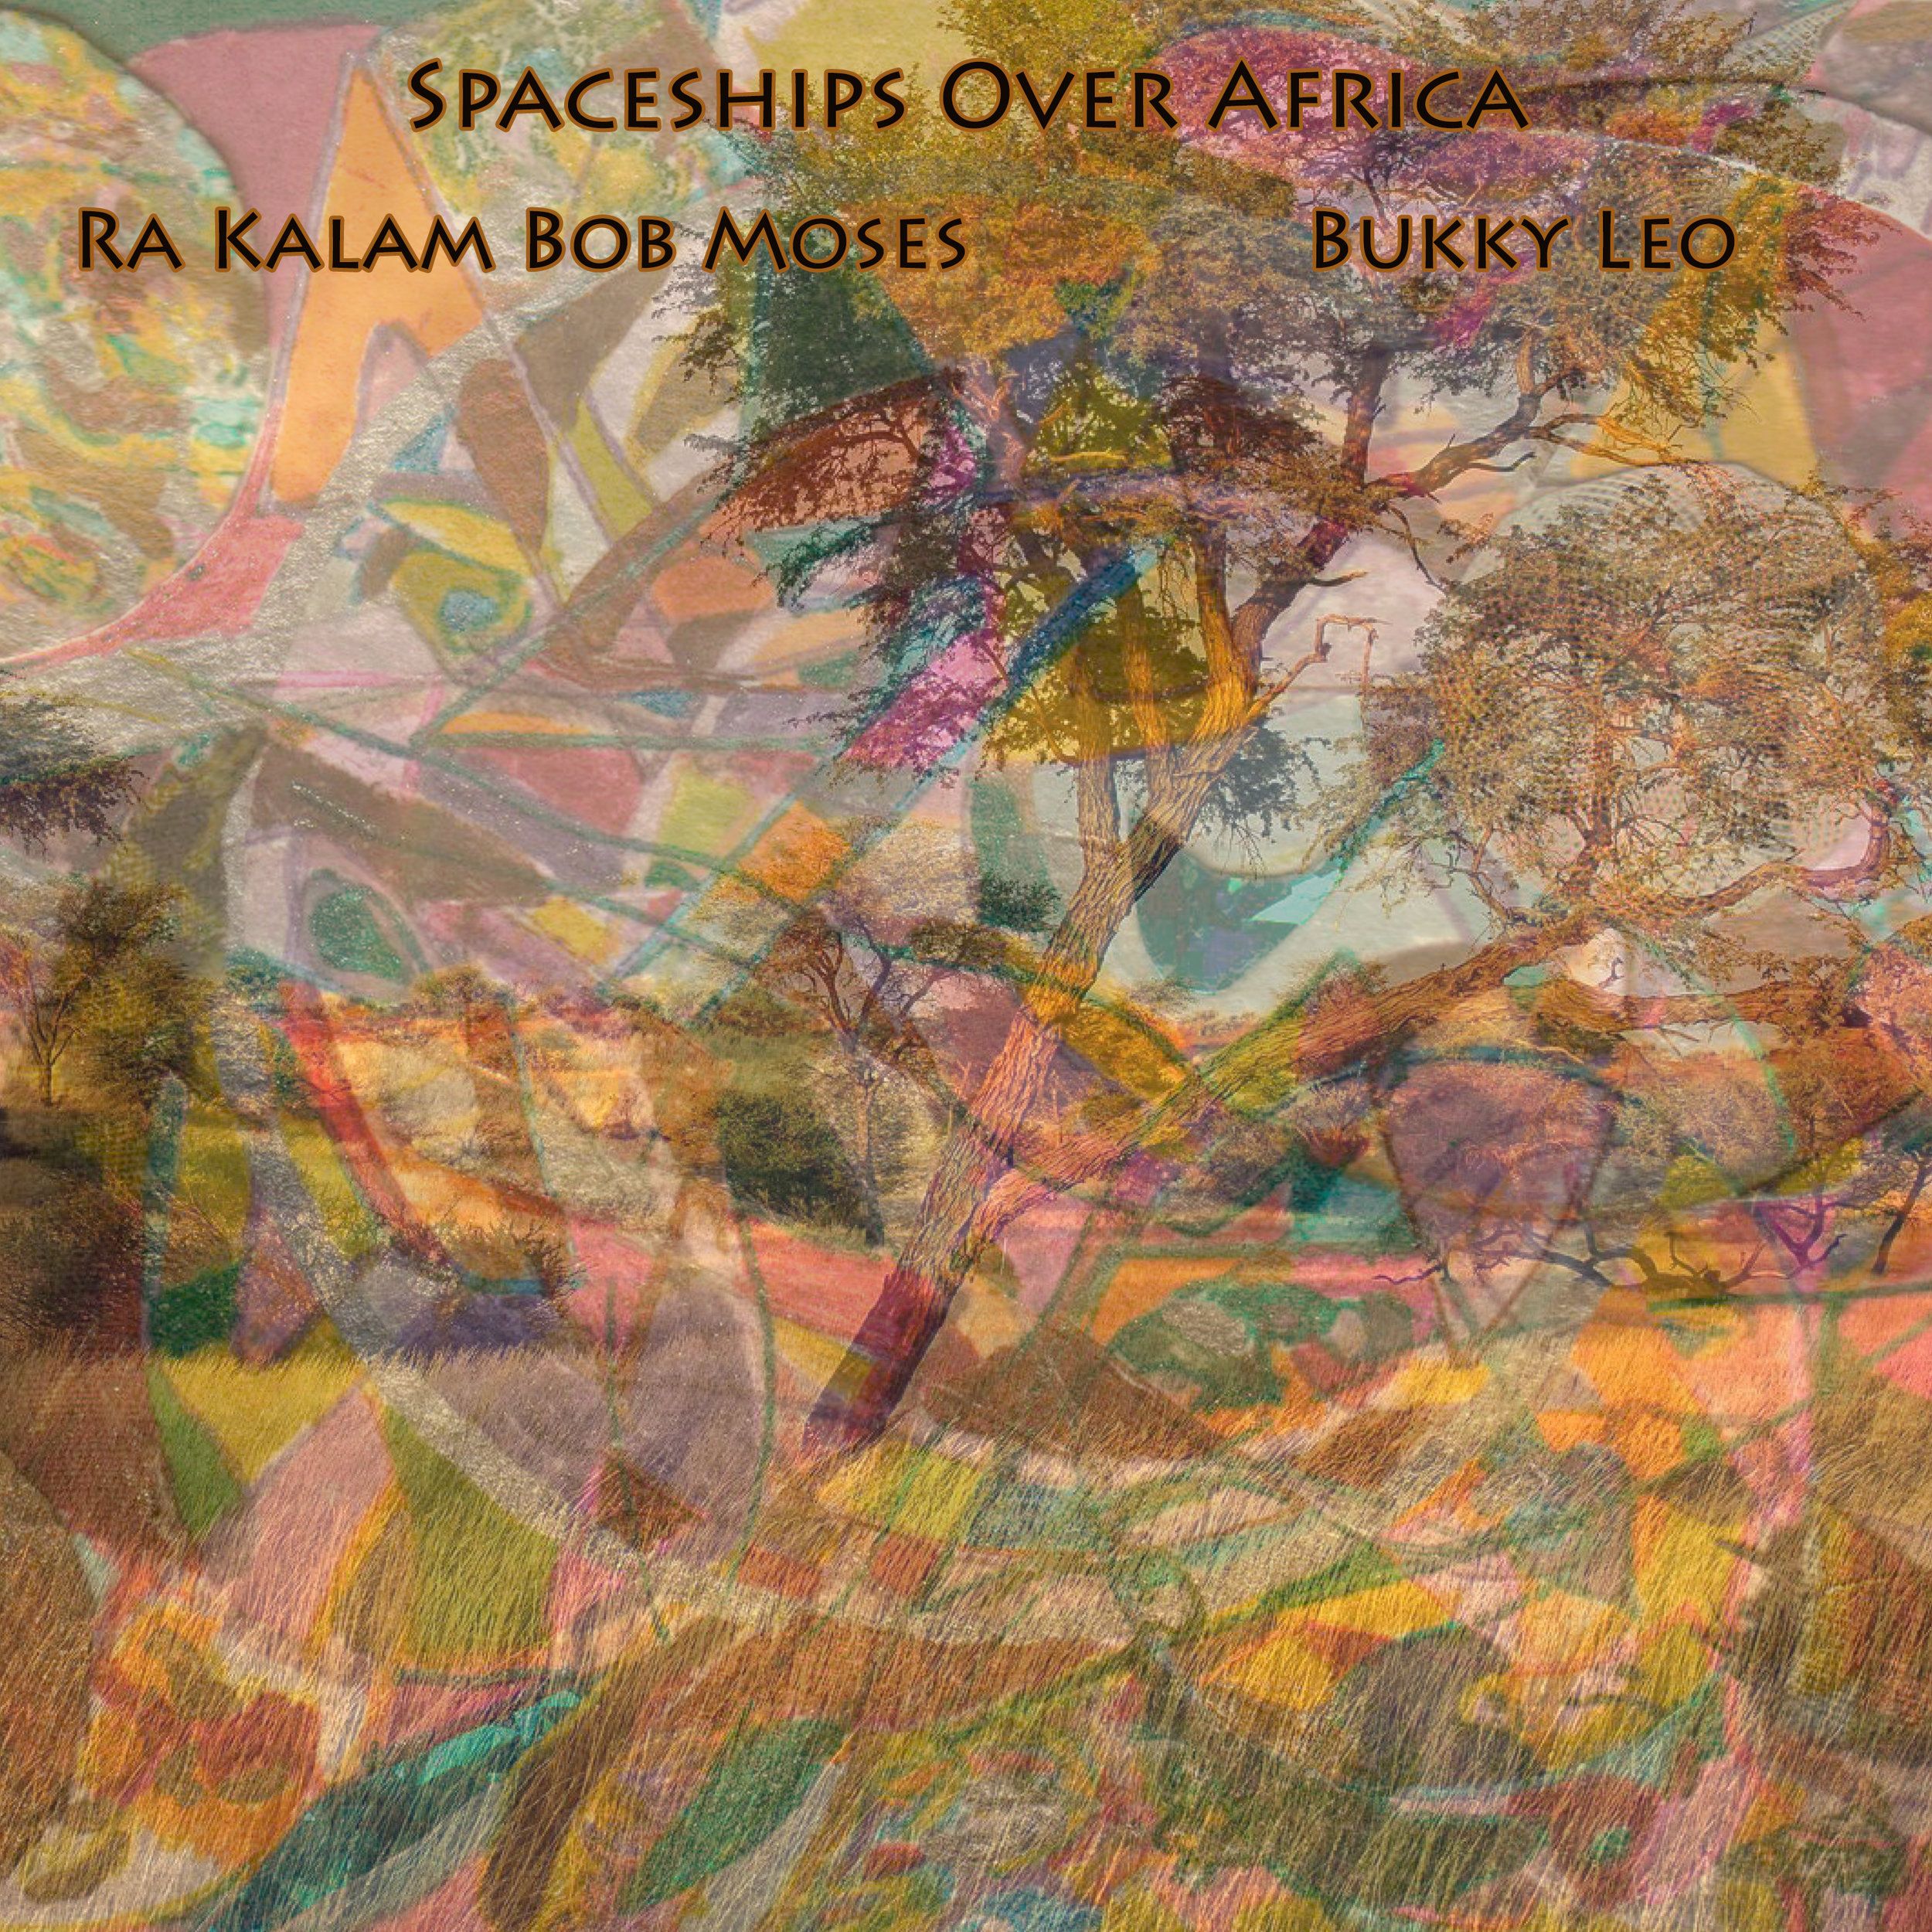 SPACESHIPS OVER AFRICA    Compact Disc -    E-mail your order     Digital Downloads -    Amazon    -    iTunes     Release date - 2018    Label - Ra Kalam Records    Leo Olubukola Afolabi (Bukky Leo) - Tenor Sax, Vocal, Percussion    Vivek Patel - Trumpet, Percussion [Tracks 1, 7 & 9]    Kritavi Jim Warshauer - Alto Sax [Track 7]    Don Pate - Bass [Tracks 1 & 7]    Ra Kalam Bob Moses - Drums, Percussion, Gongs, Bass [Track 5]     SAMPLE